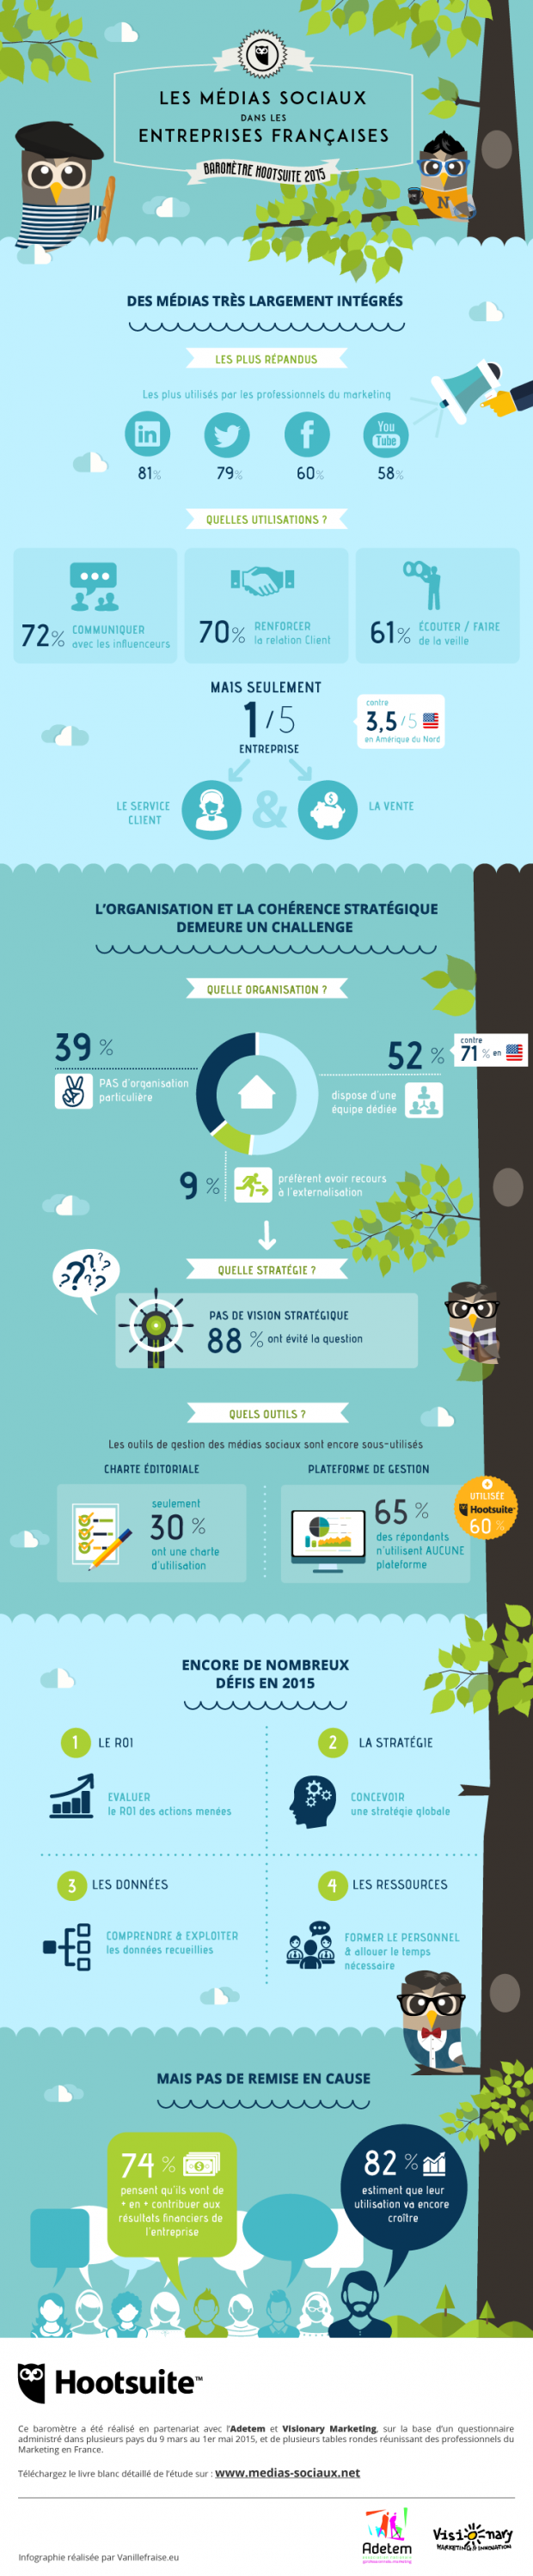 Infographie-hootsuite2